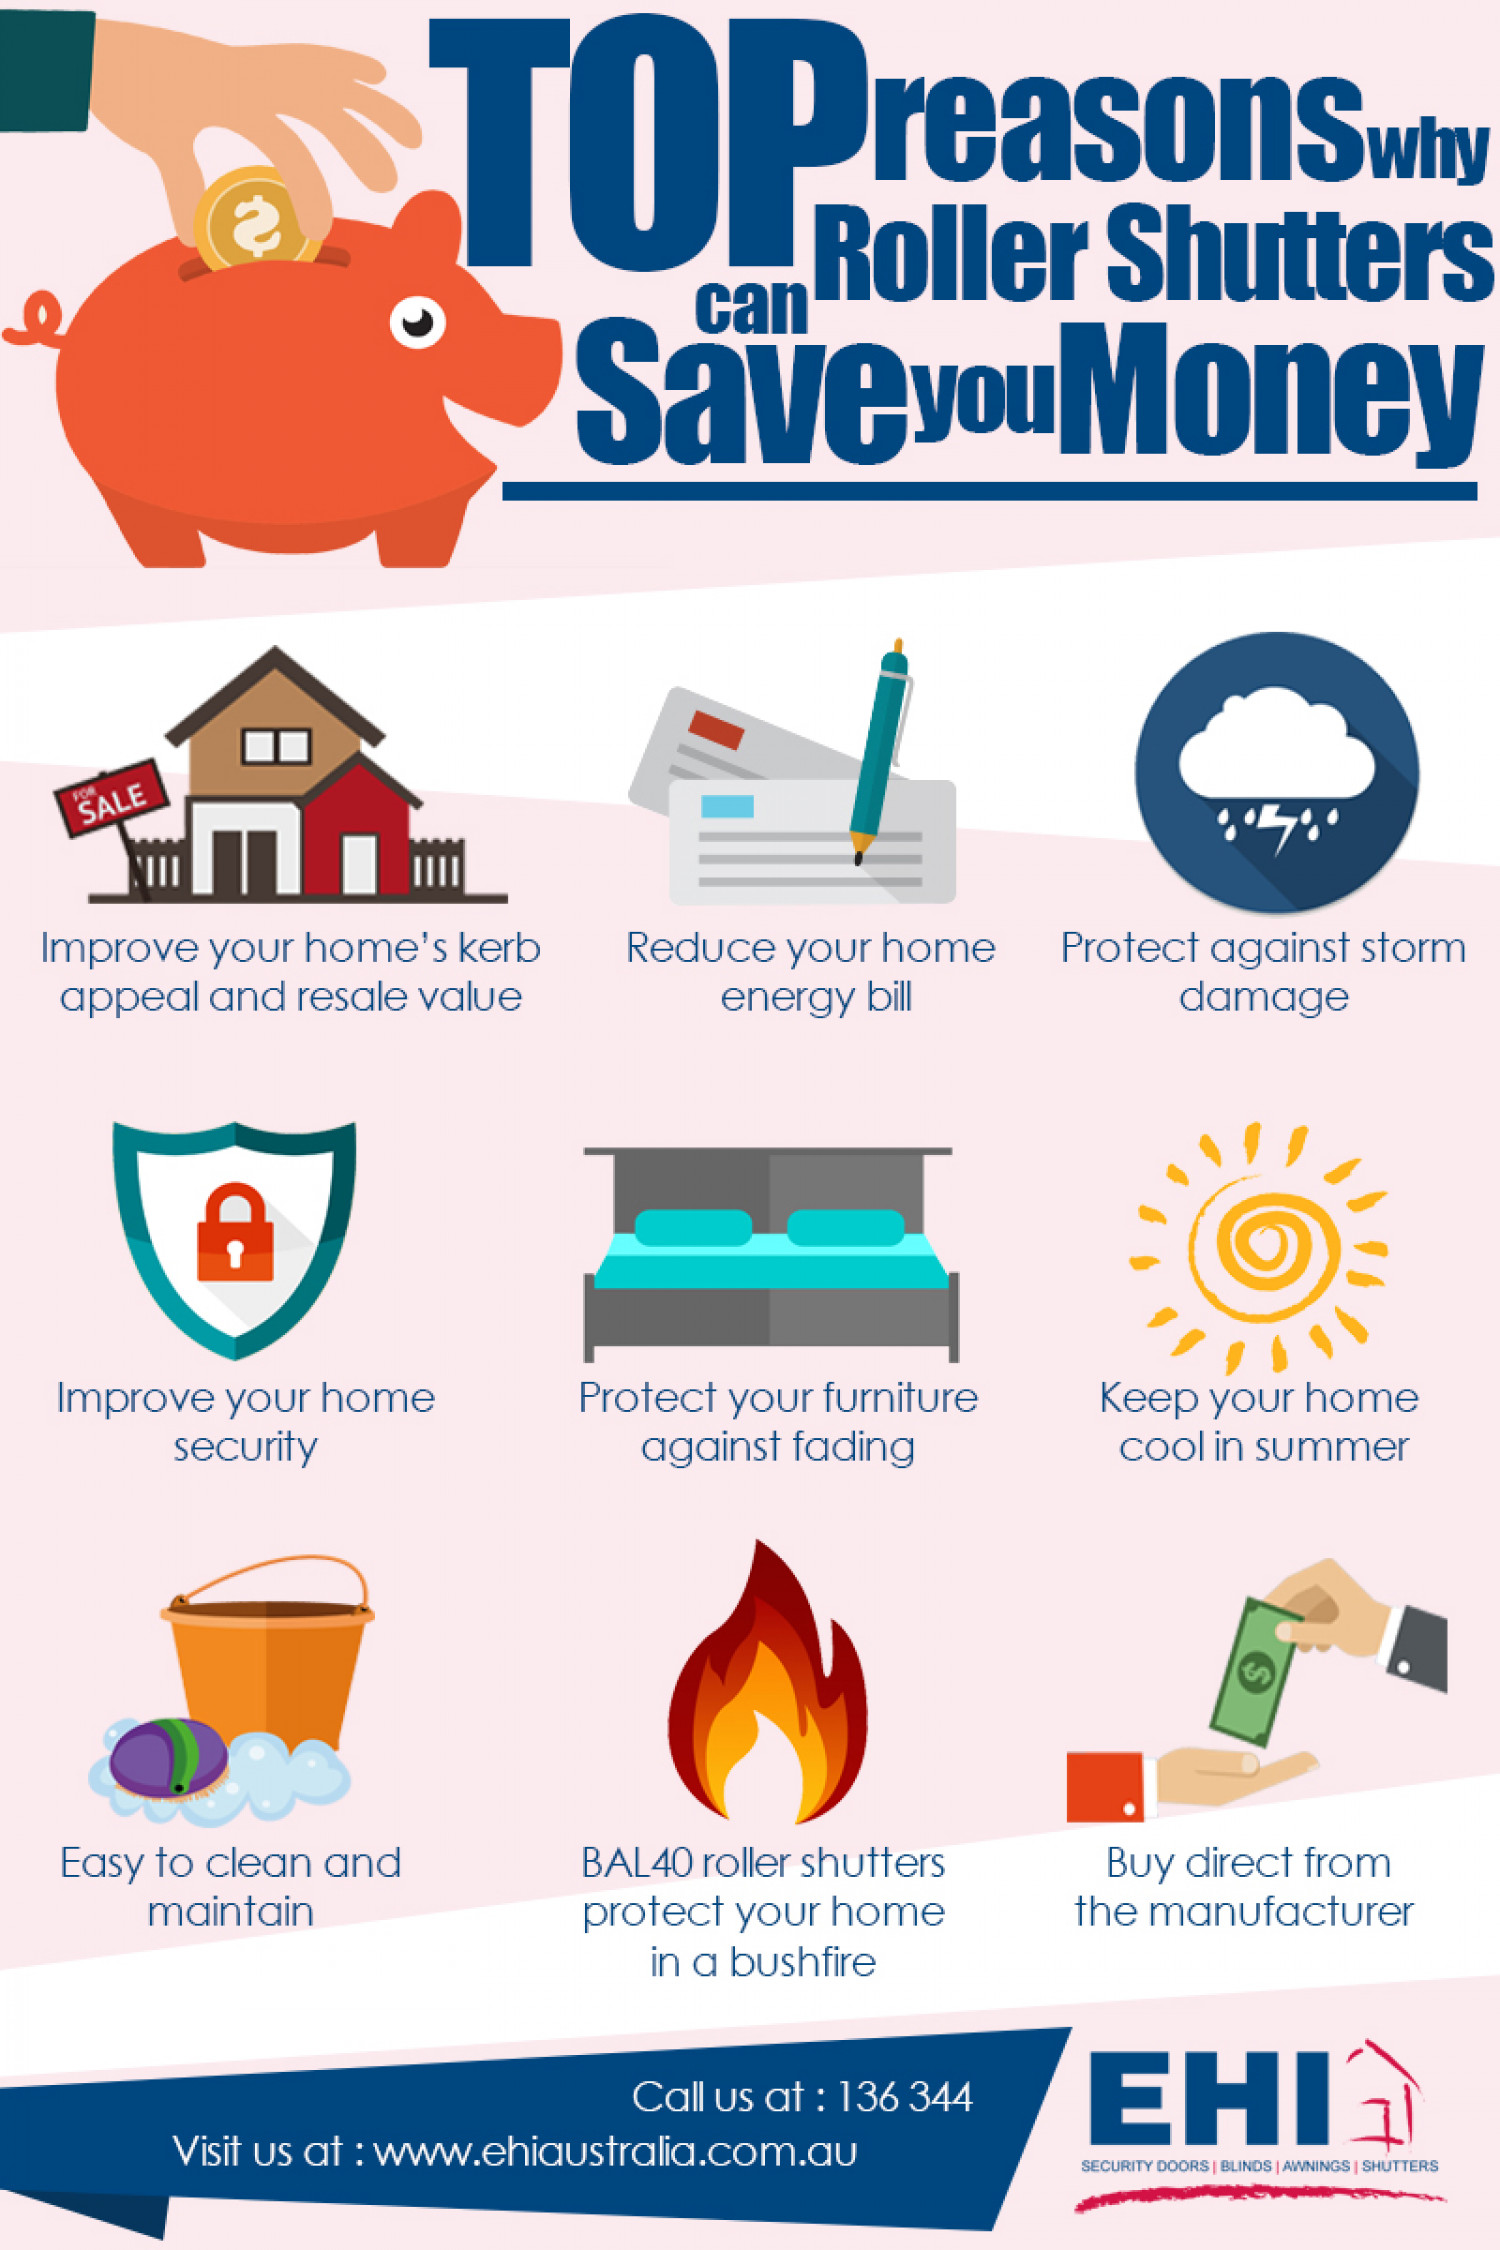 Top Reasons Why Roller Shutters Can Save You Money Infographic